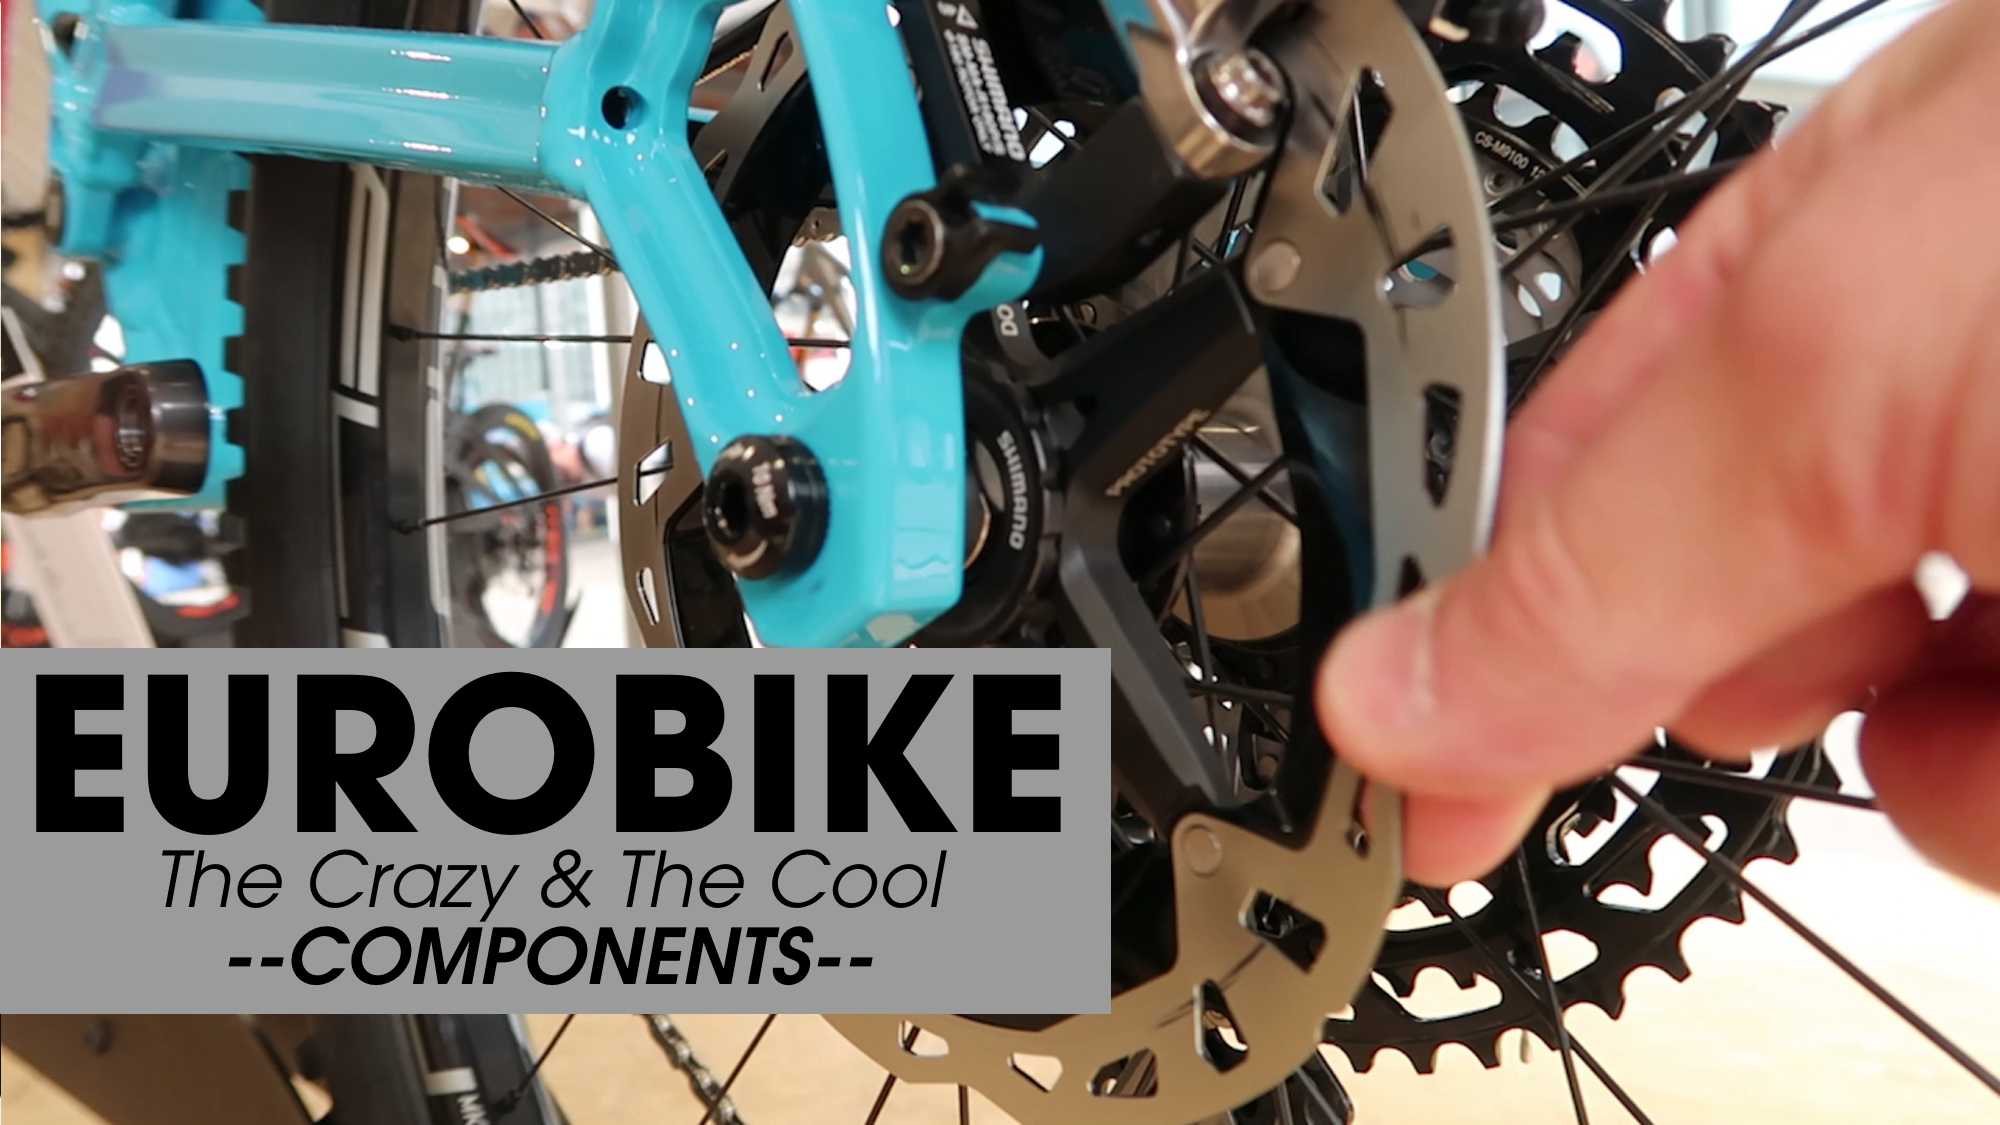 The Crazy and the Cool - COMPONENTS from Eurobike